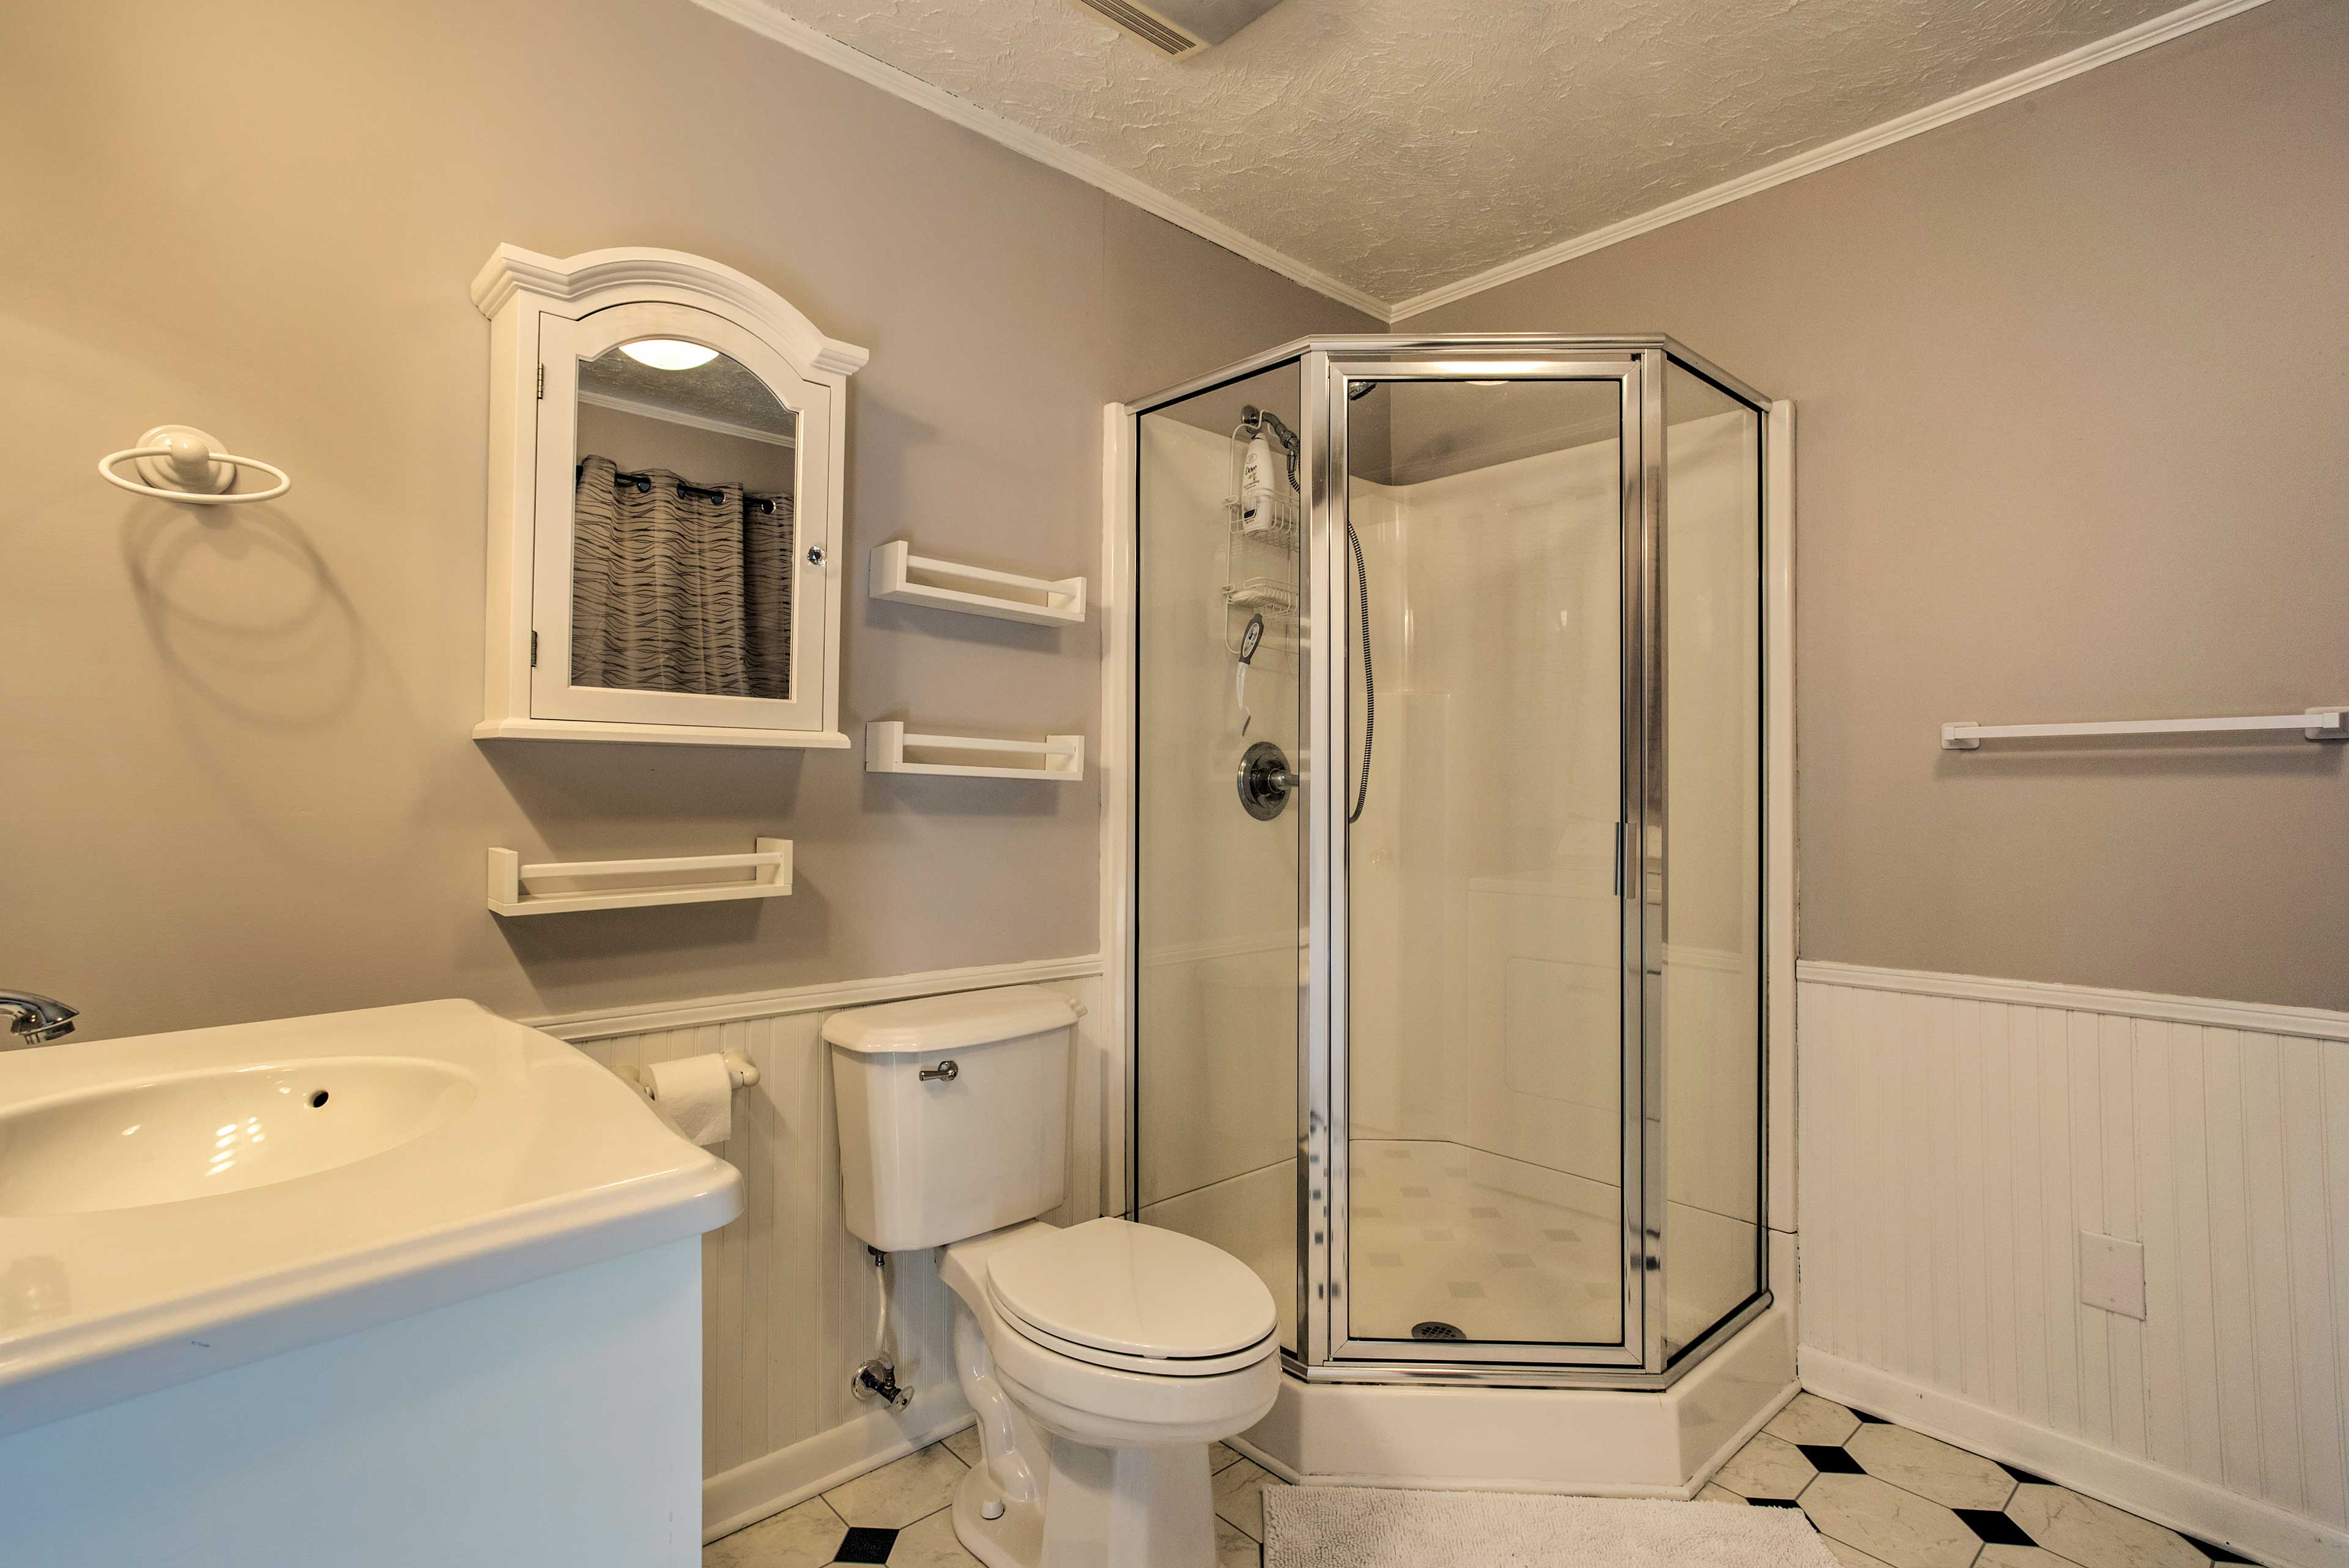 Connected to the master bedroom is this full en-suite bathroom.